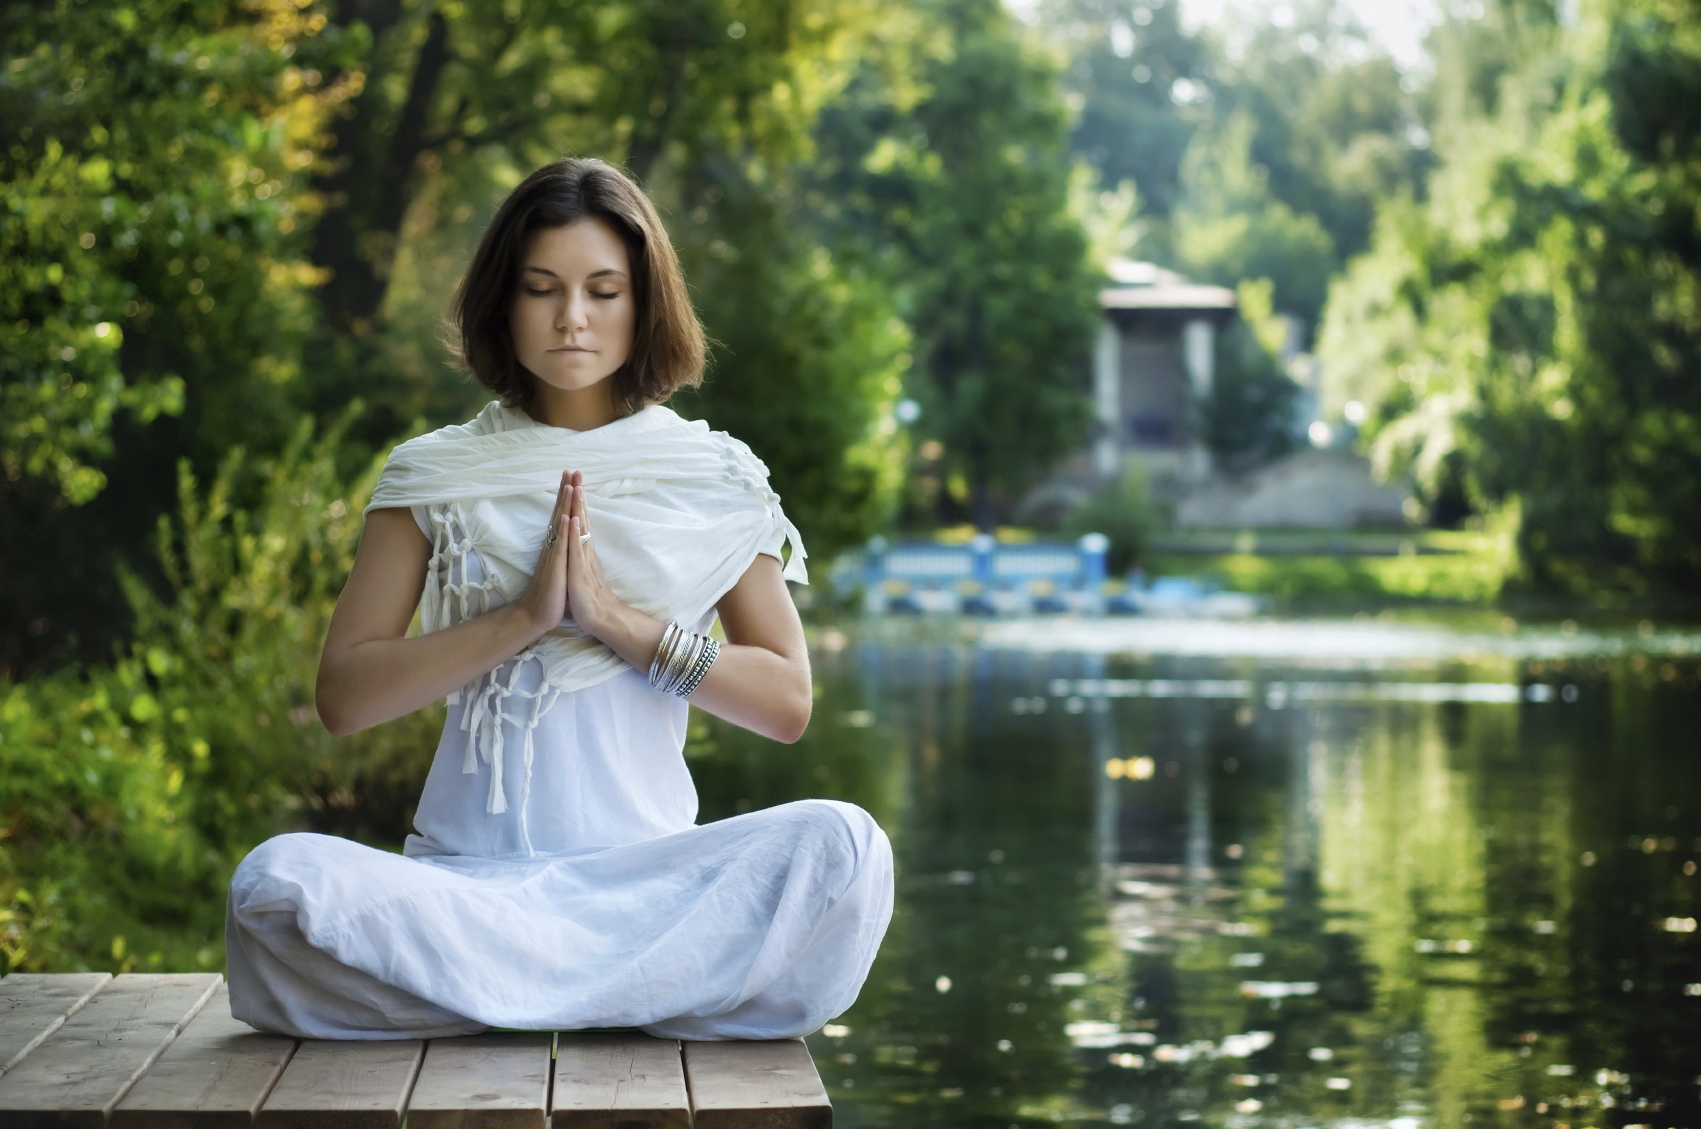 Resolutions Apps To Keep Your Spiritual Goals